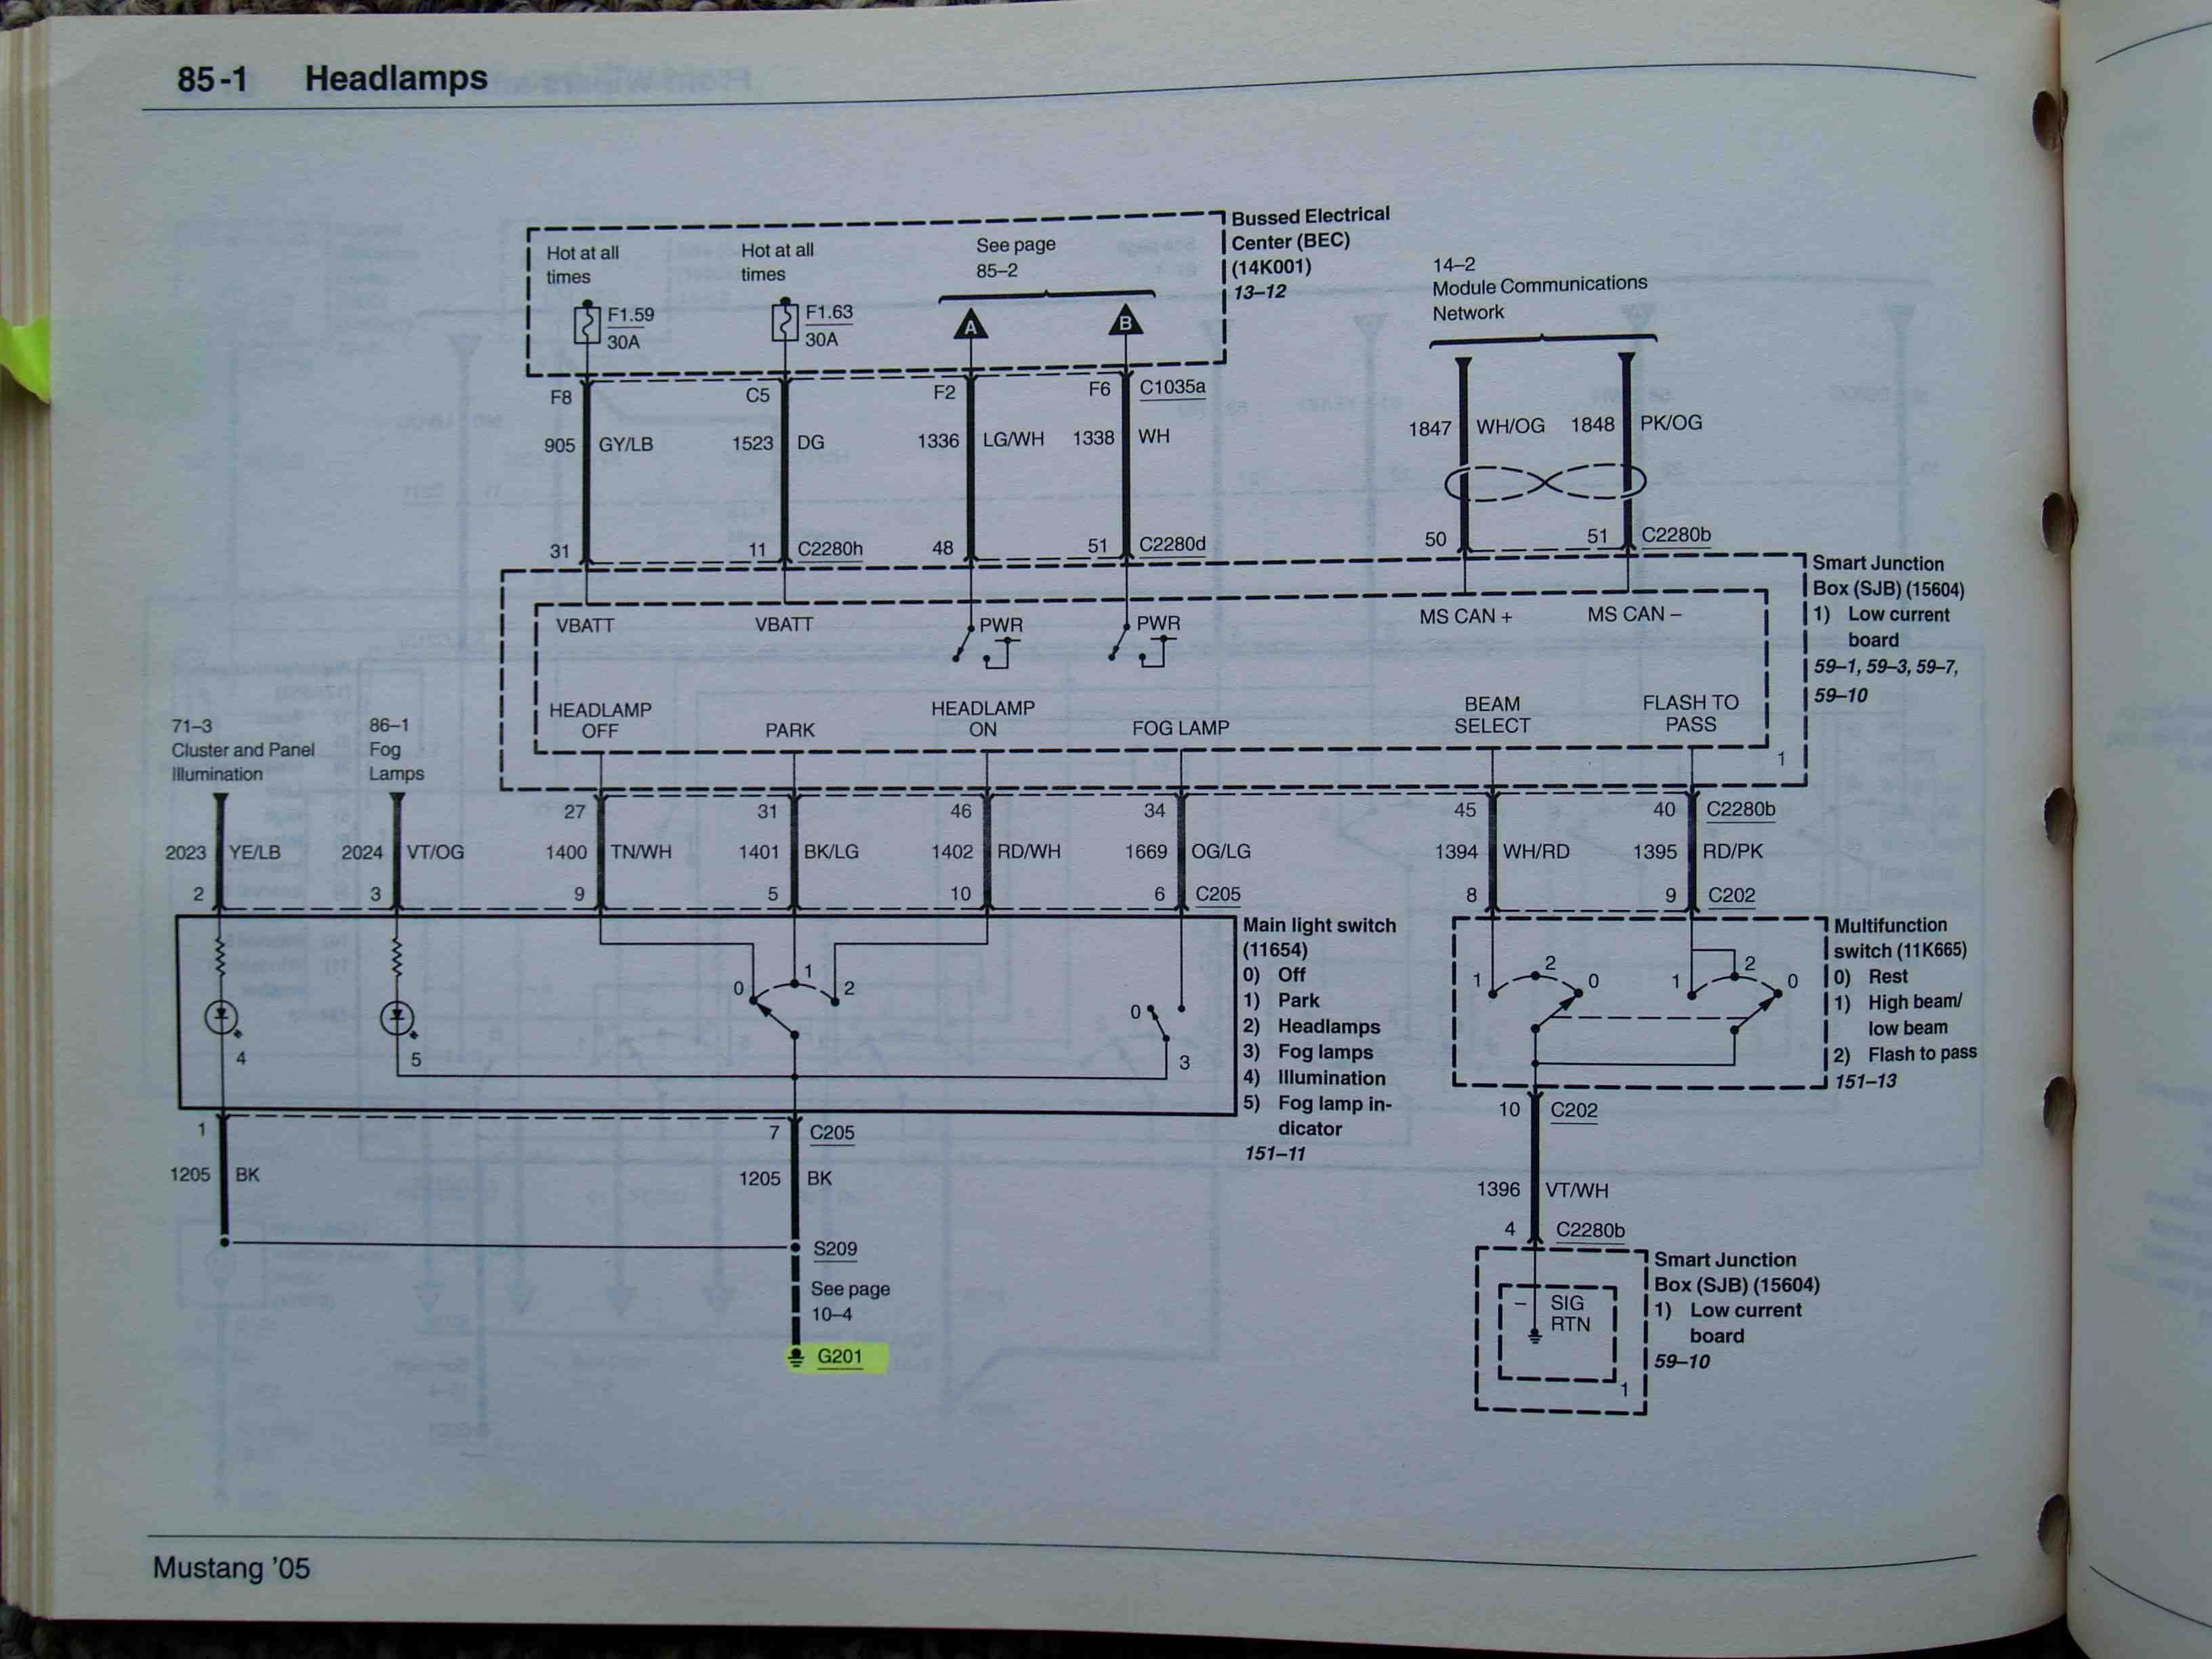 wiring diagram for 2005 ford mustang the wiring diagram 2008 gt headlight wiring diagram ford mustang forum wiring diagram